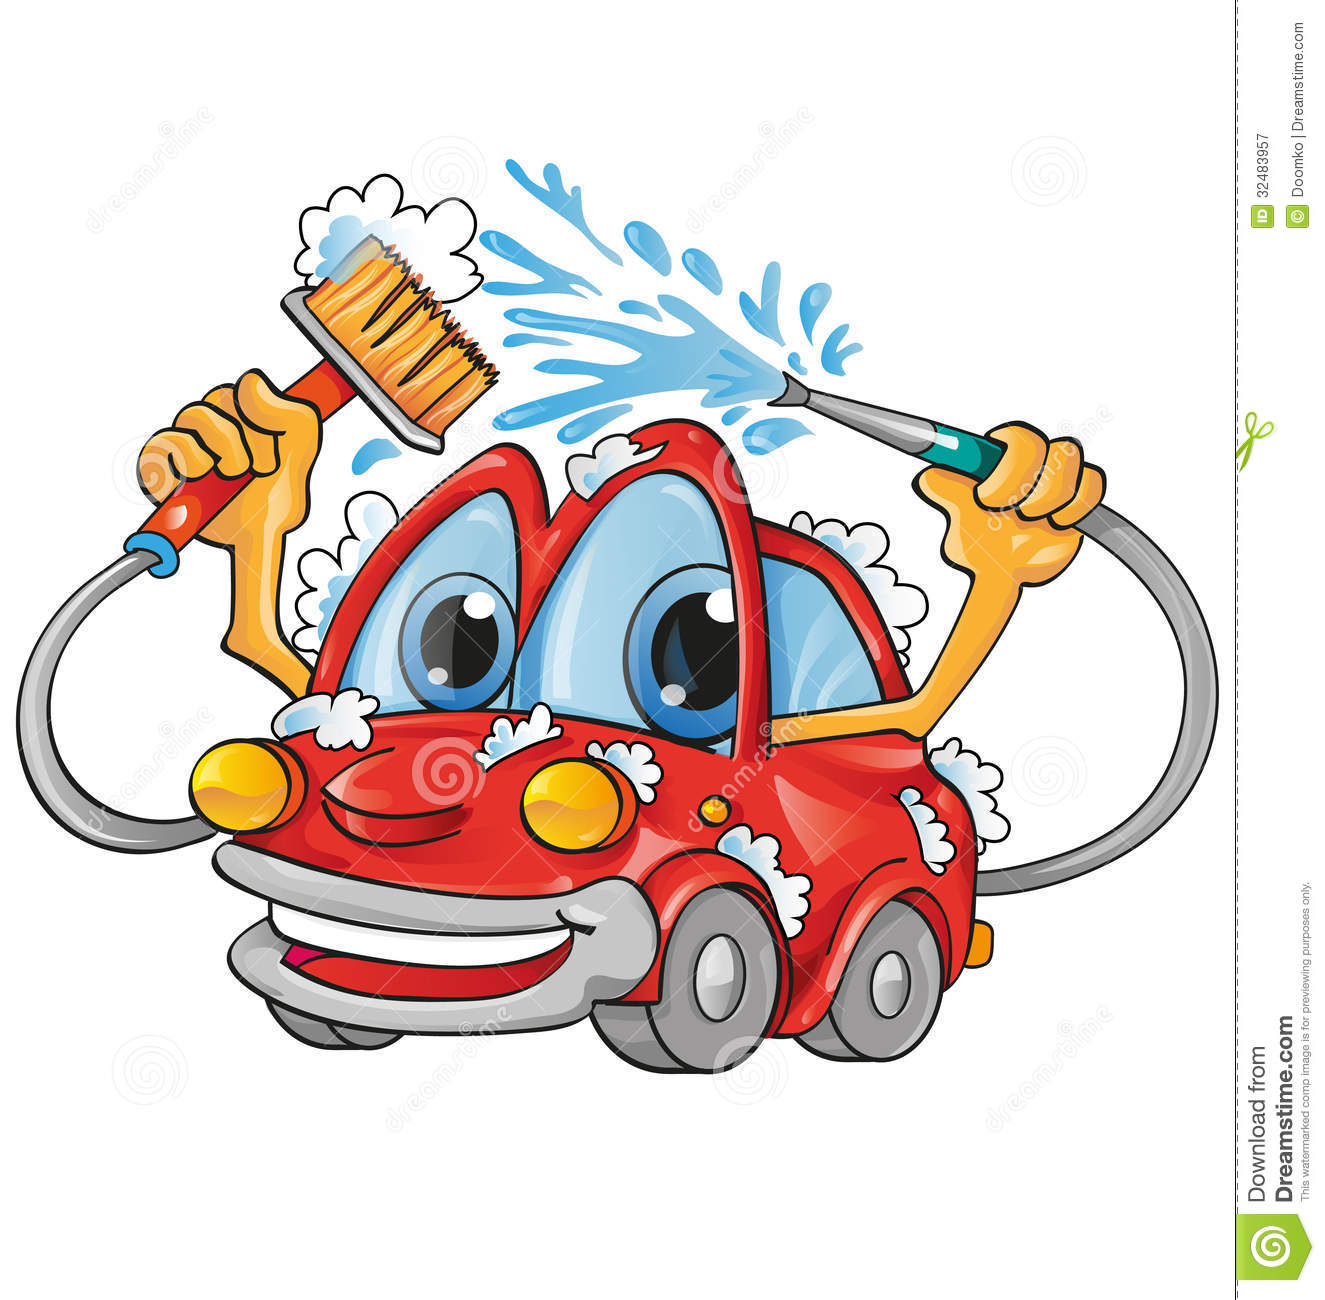 Car Wash Cartoon Royalty Free Stock Photography - Image: 32483957